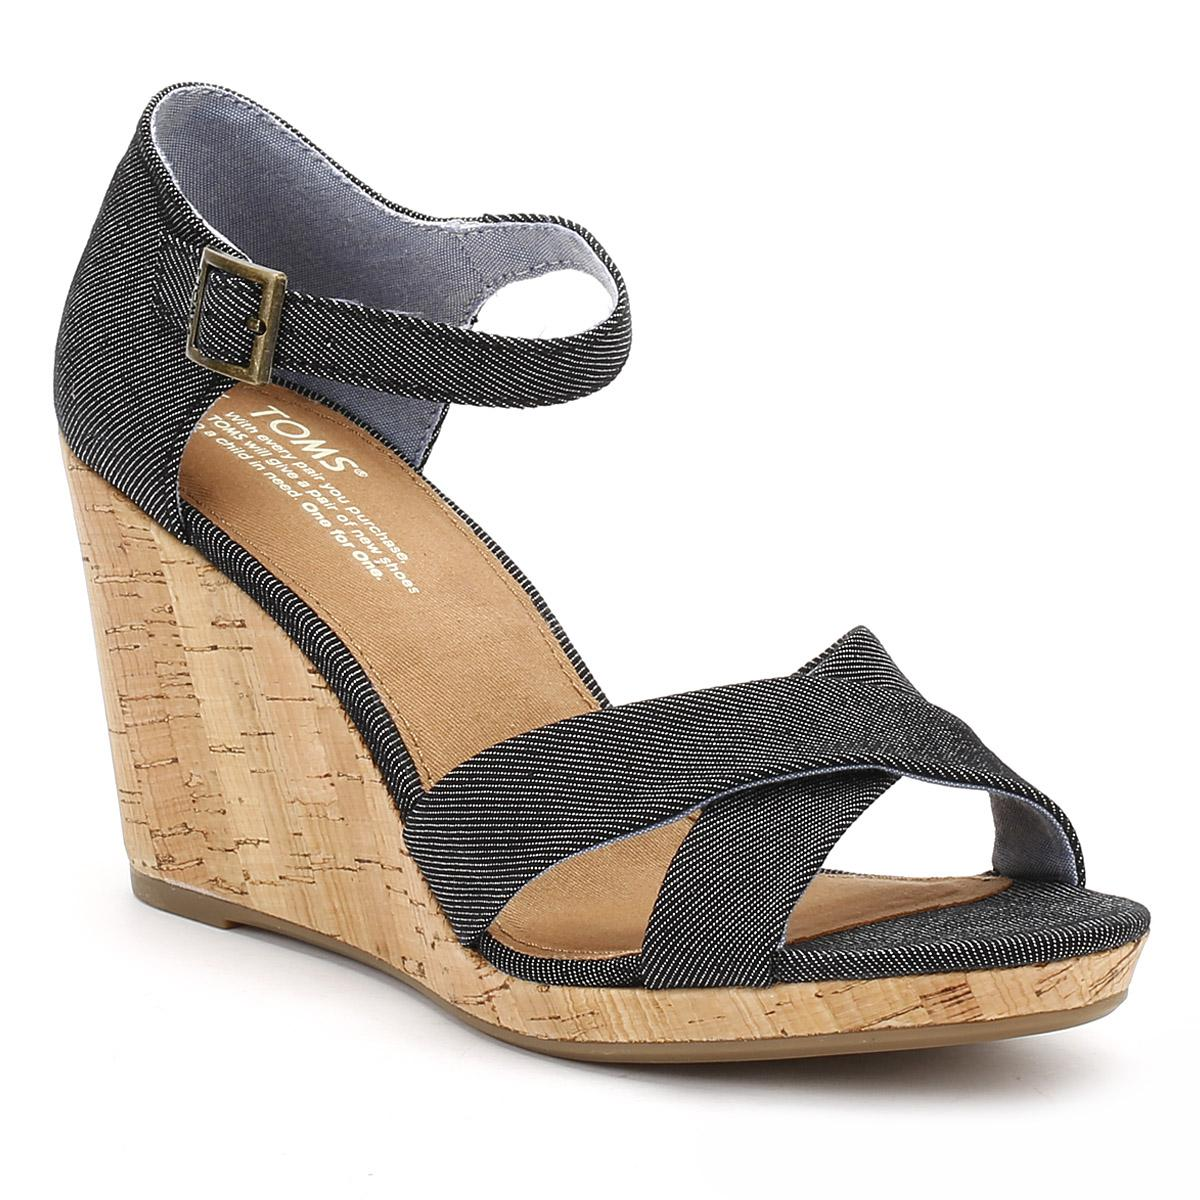 Buy Wedge Shoes Uk